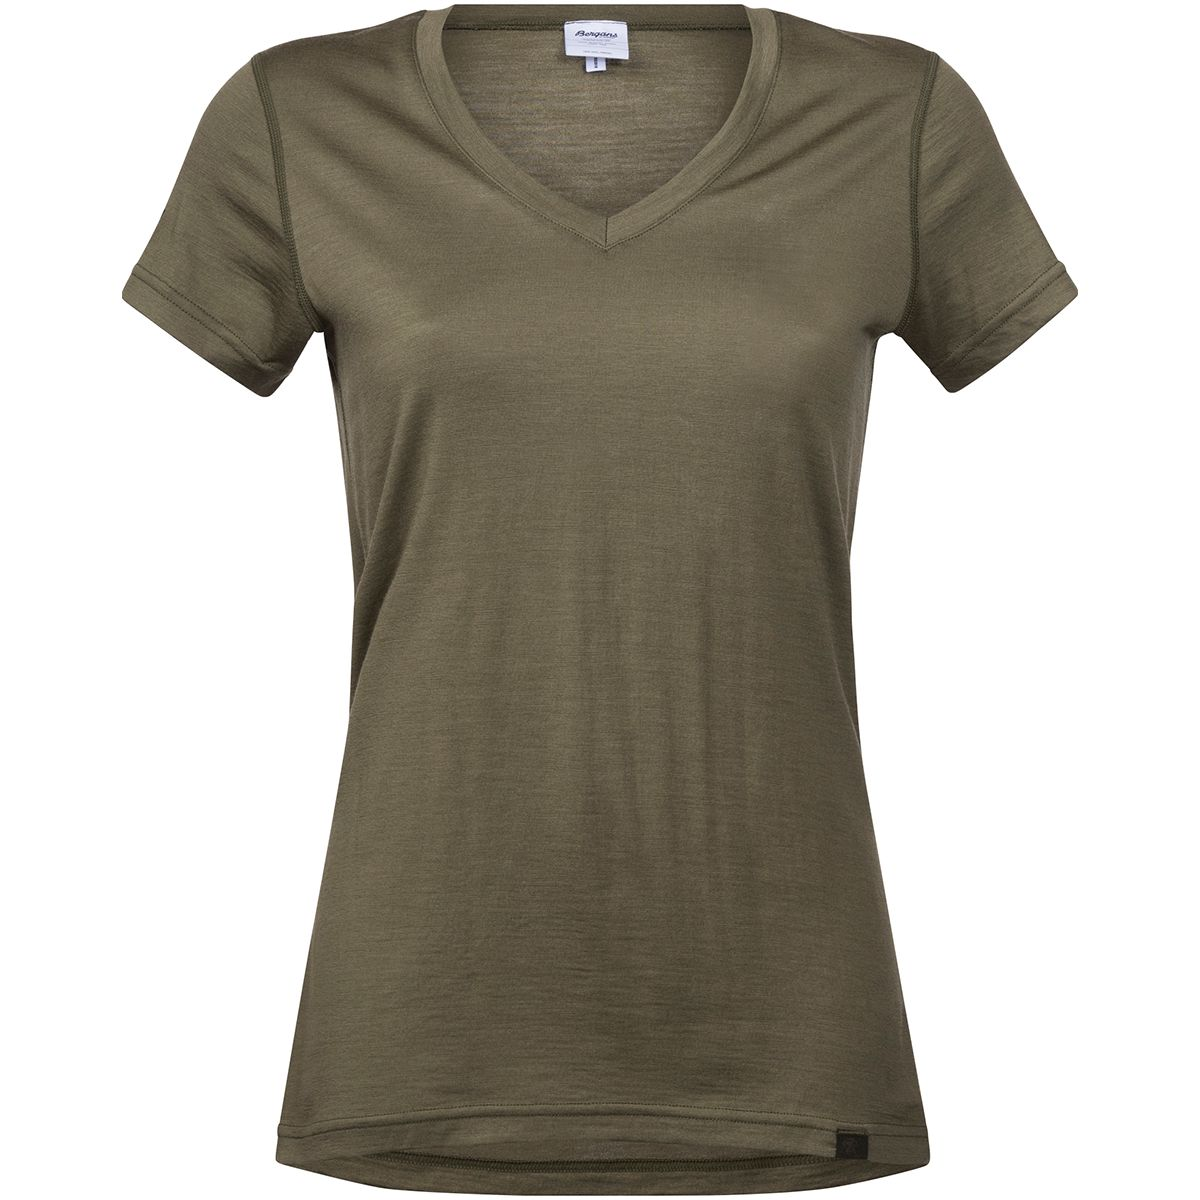 Bergans Damen Bloom T-Shirt (Größe S, Oliv) | T-Shirts Merino > Damen